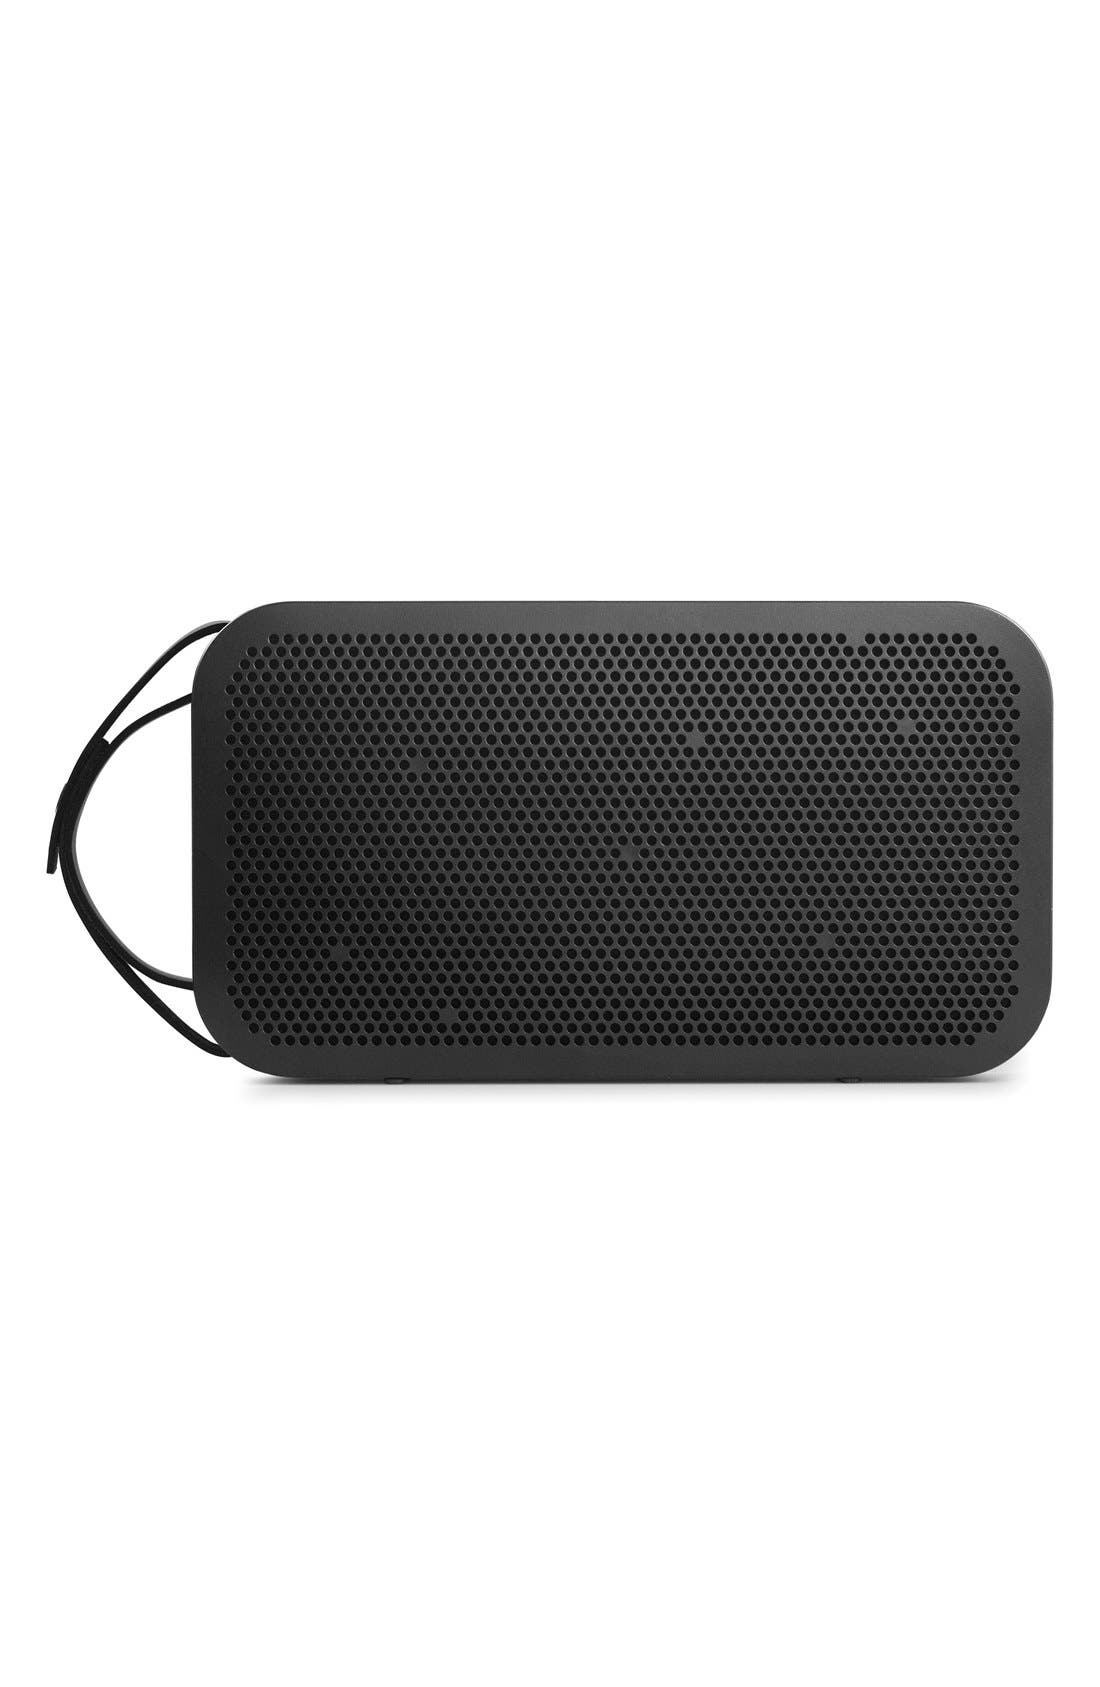 'A2' Portable Bluetooth<sup>®</sup> Speaker,                             Main thumbnail 1, color,                             001